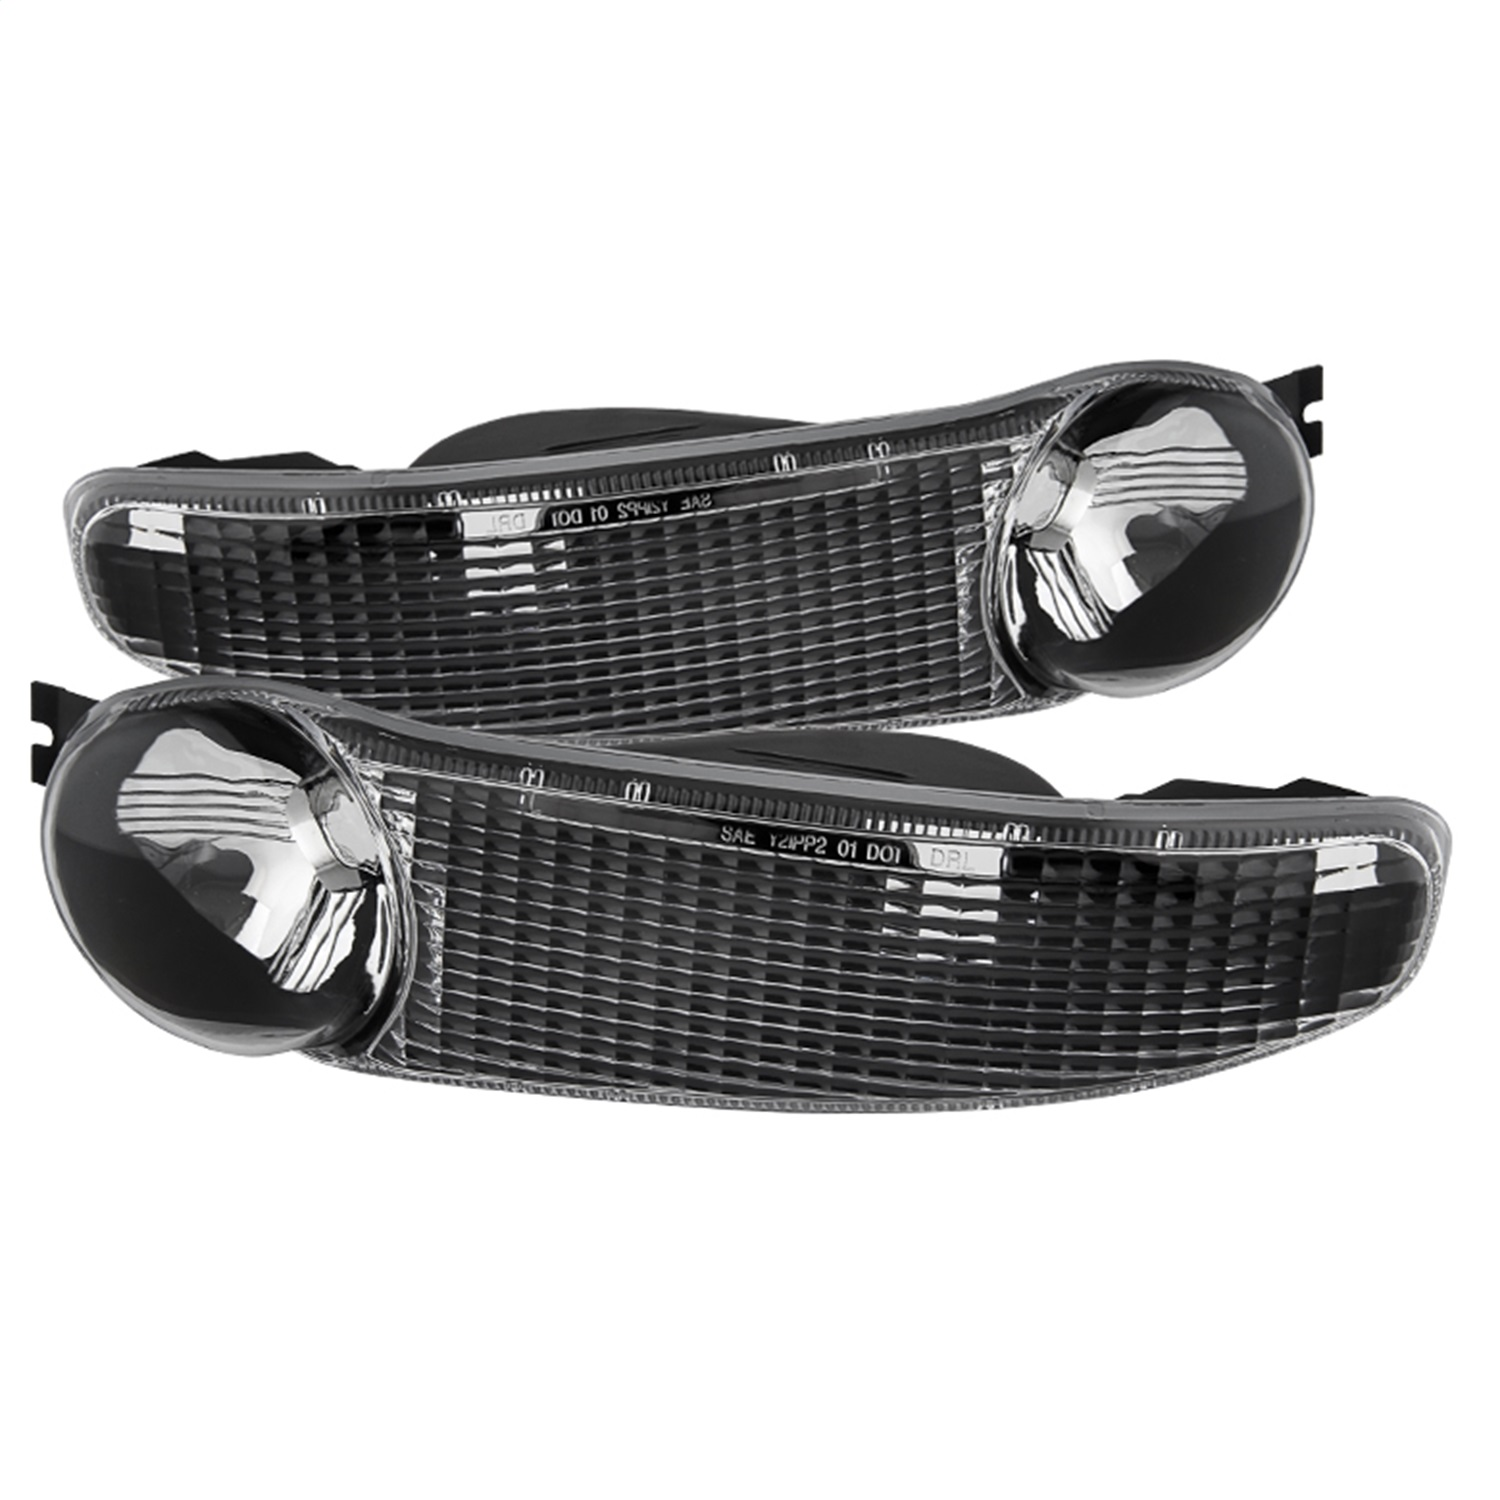 Spyder Auto Cornering Light